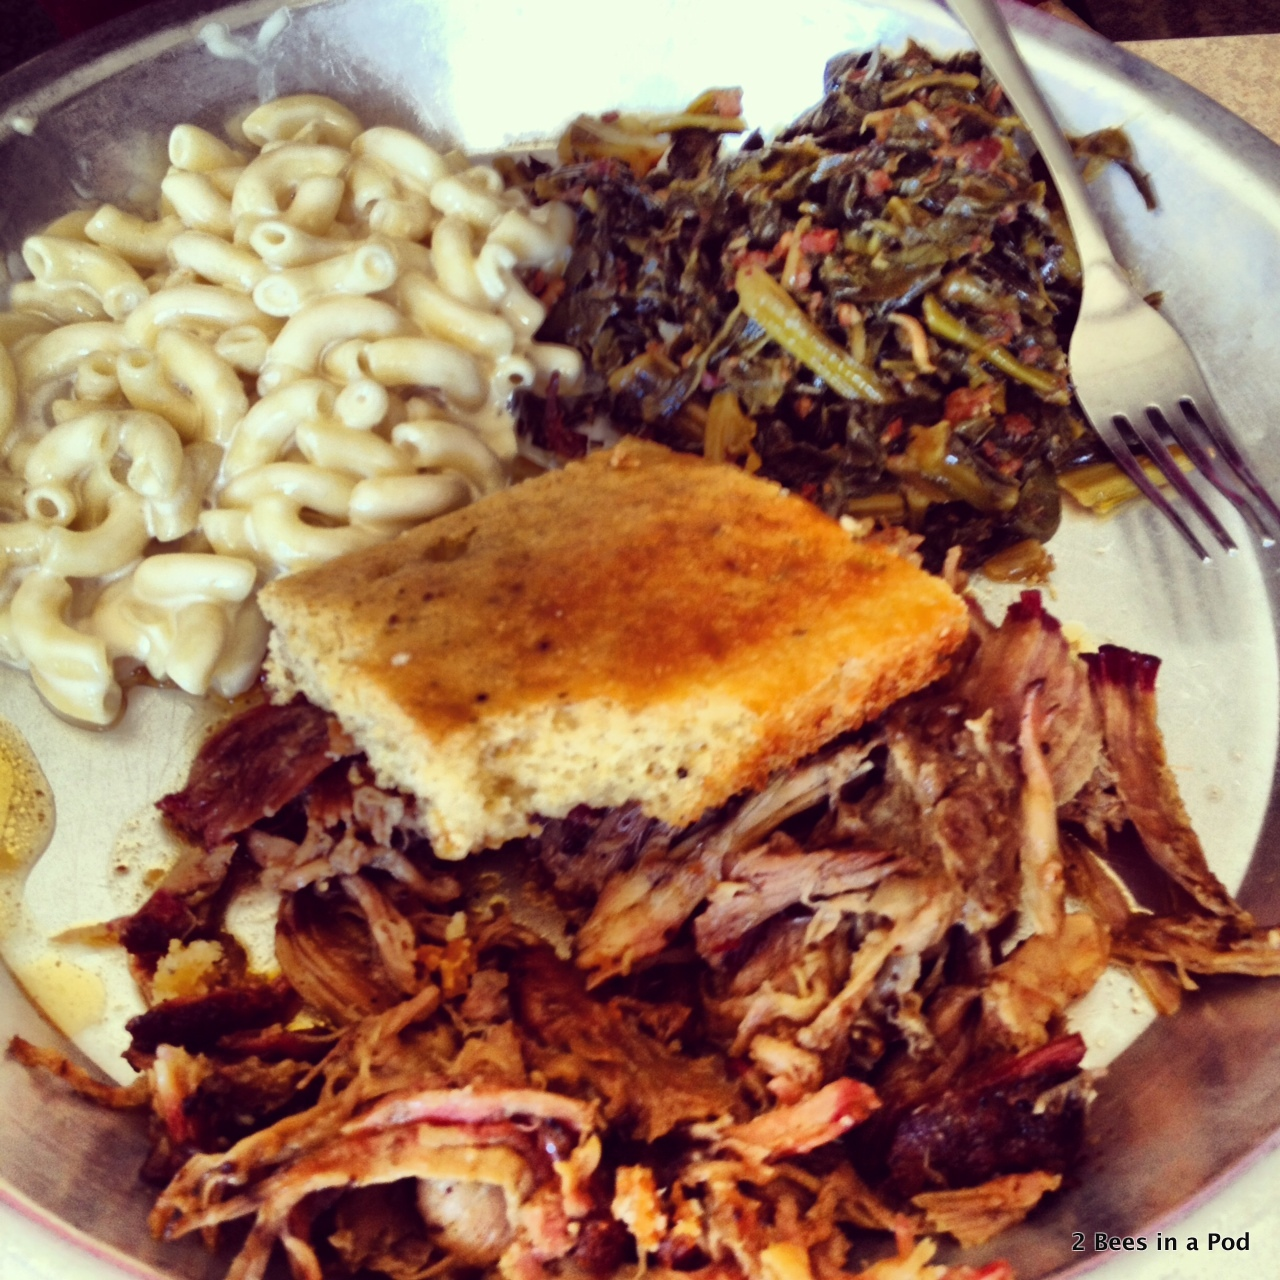 Such great barbeque at 12 Bones in Asheville...mac & cheese, corn bread, collards, and pulled pork